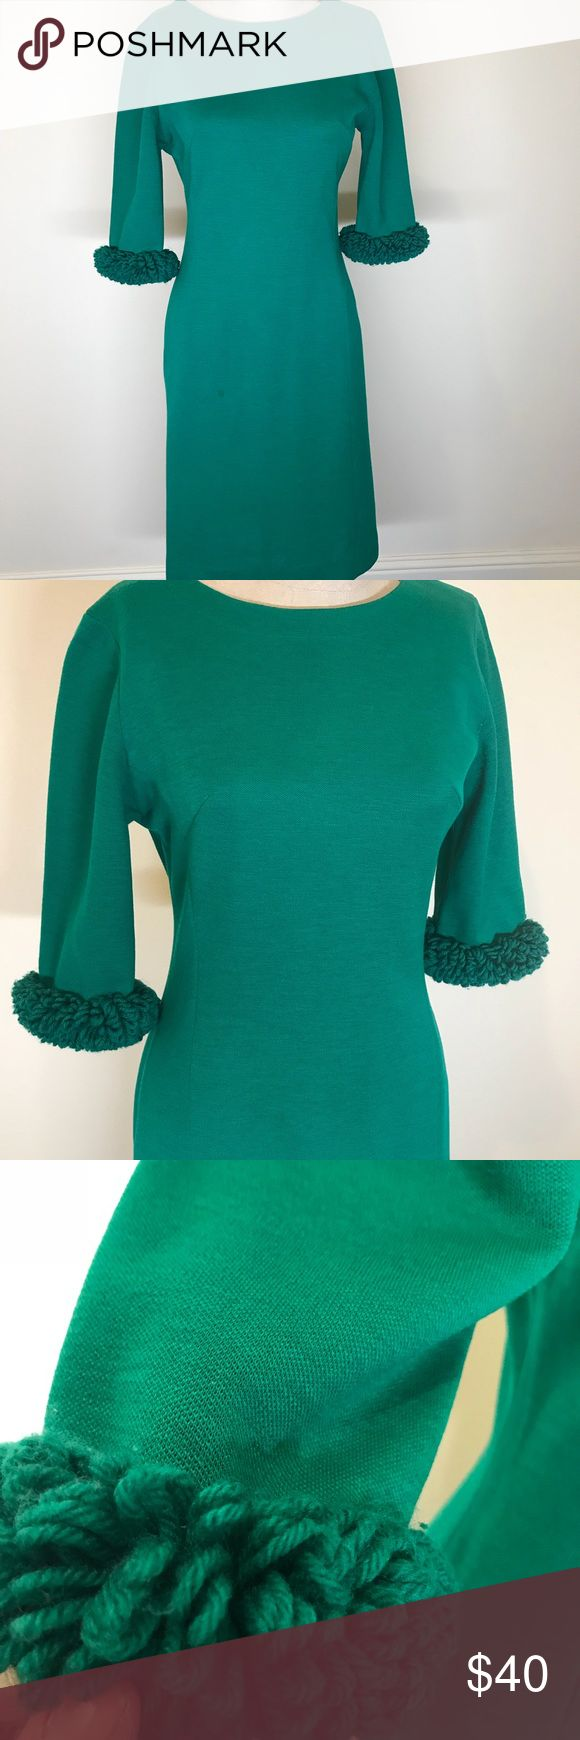 Fabulous VTG sweater dress! Great fabric arm cuffs with this cute 60s form fitting dress. Color of green is beautiful. Would look Great with a multi colored scarf and a fabulous chunky pin. Vintage Dresses Midi